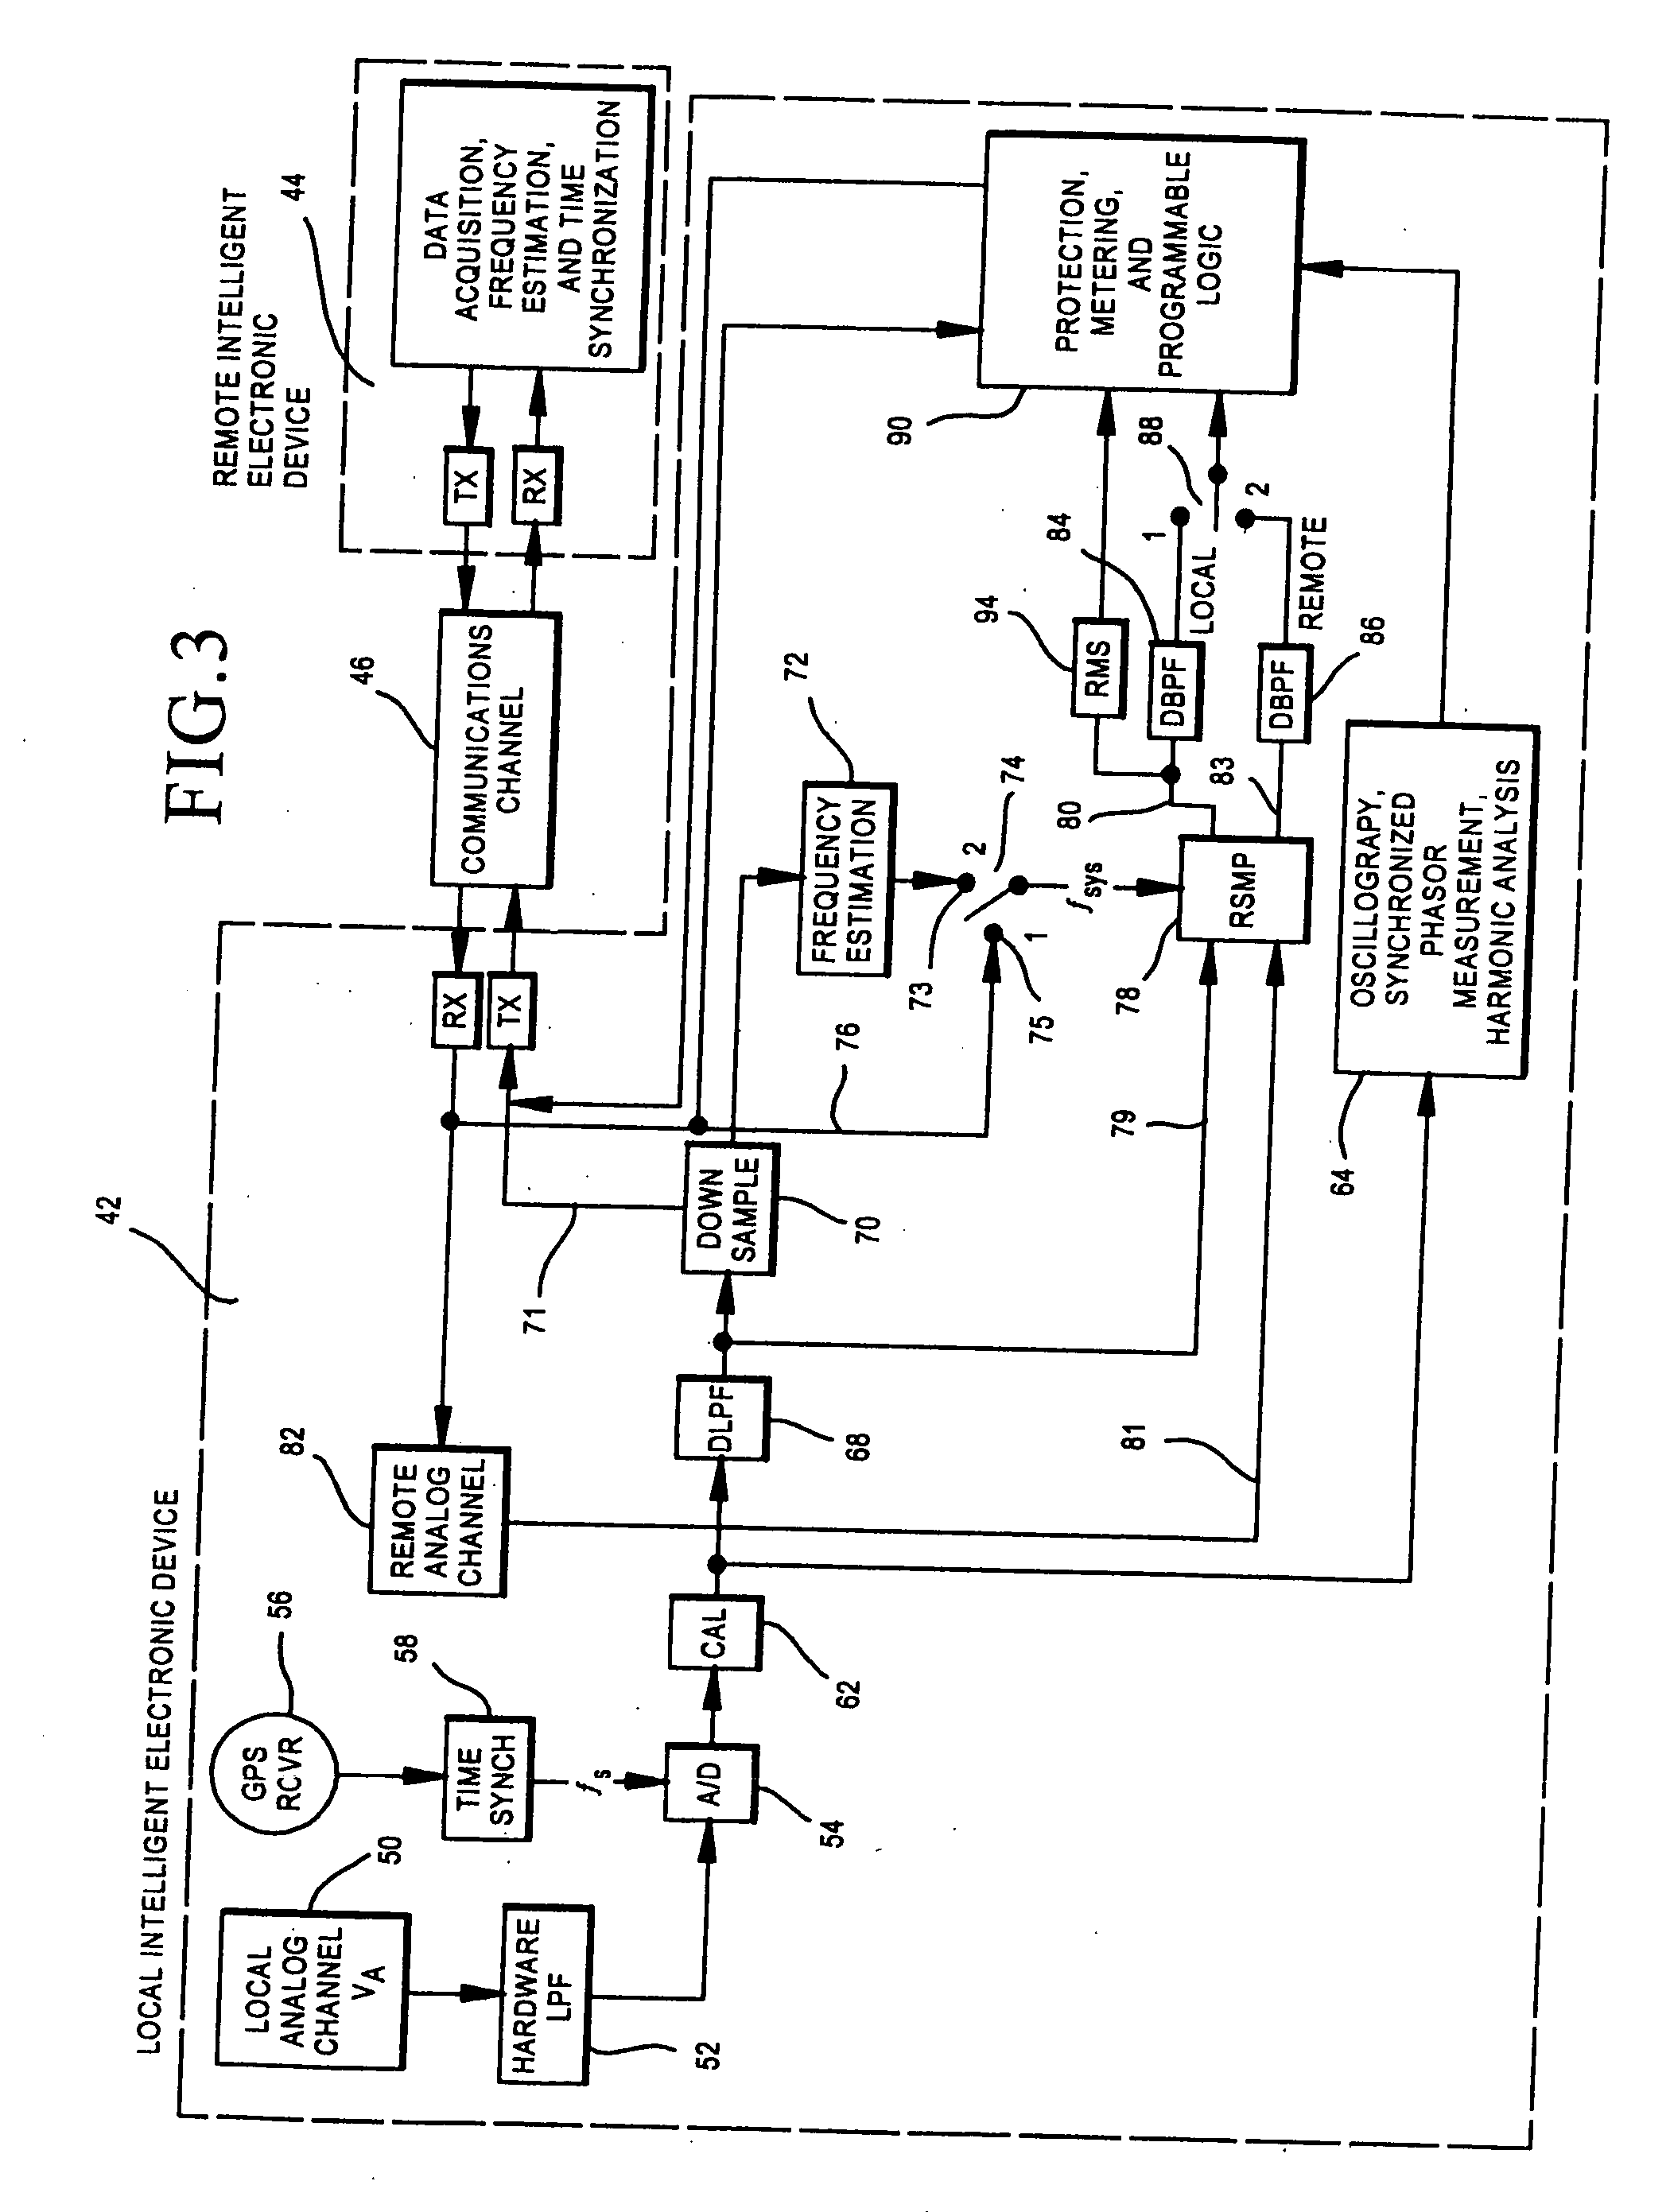 ground fault relay wiring diagram images a relay wiring ground 86 abb relay diagram wiring diagrams pictures wiring